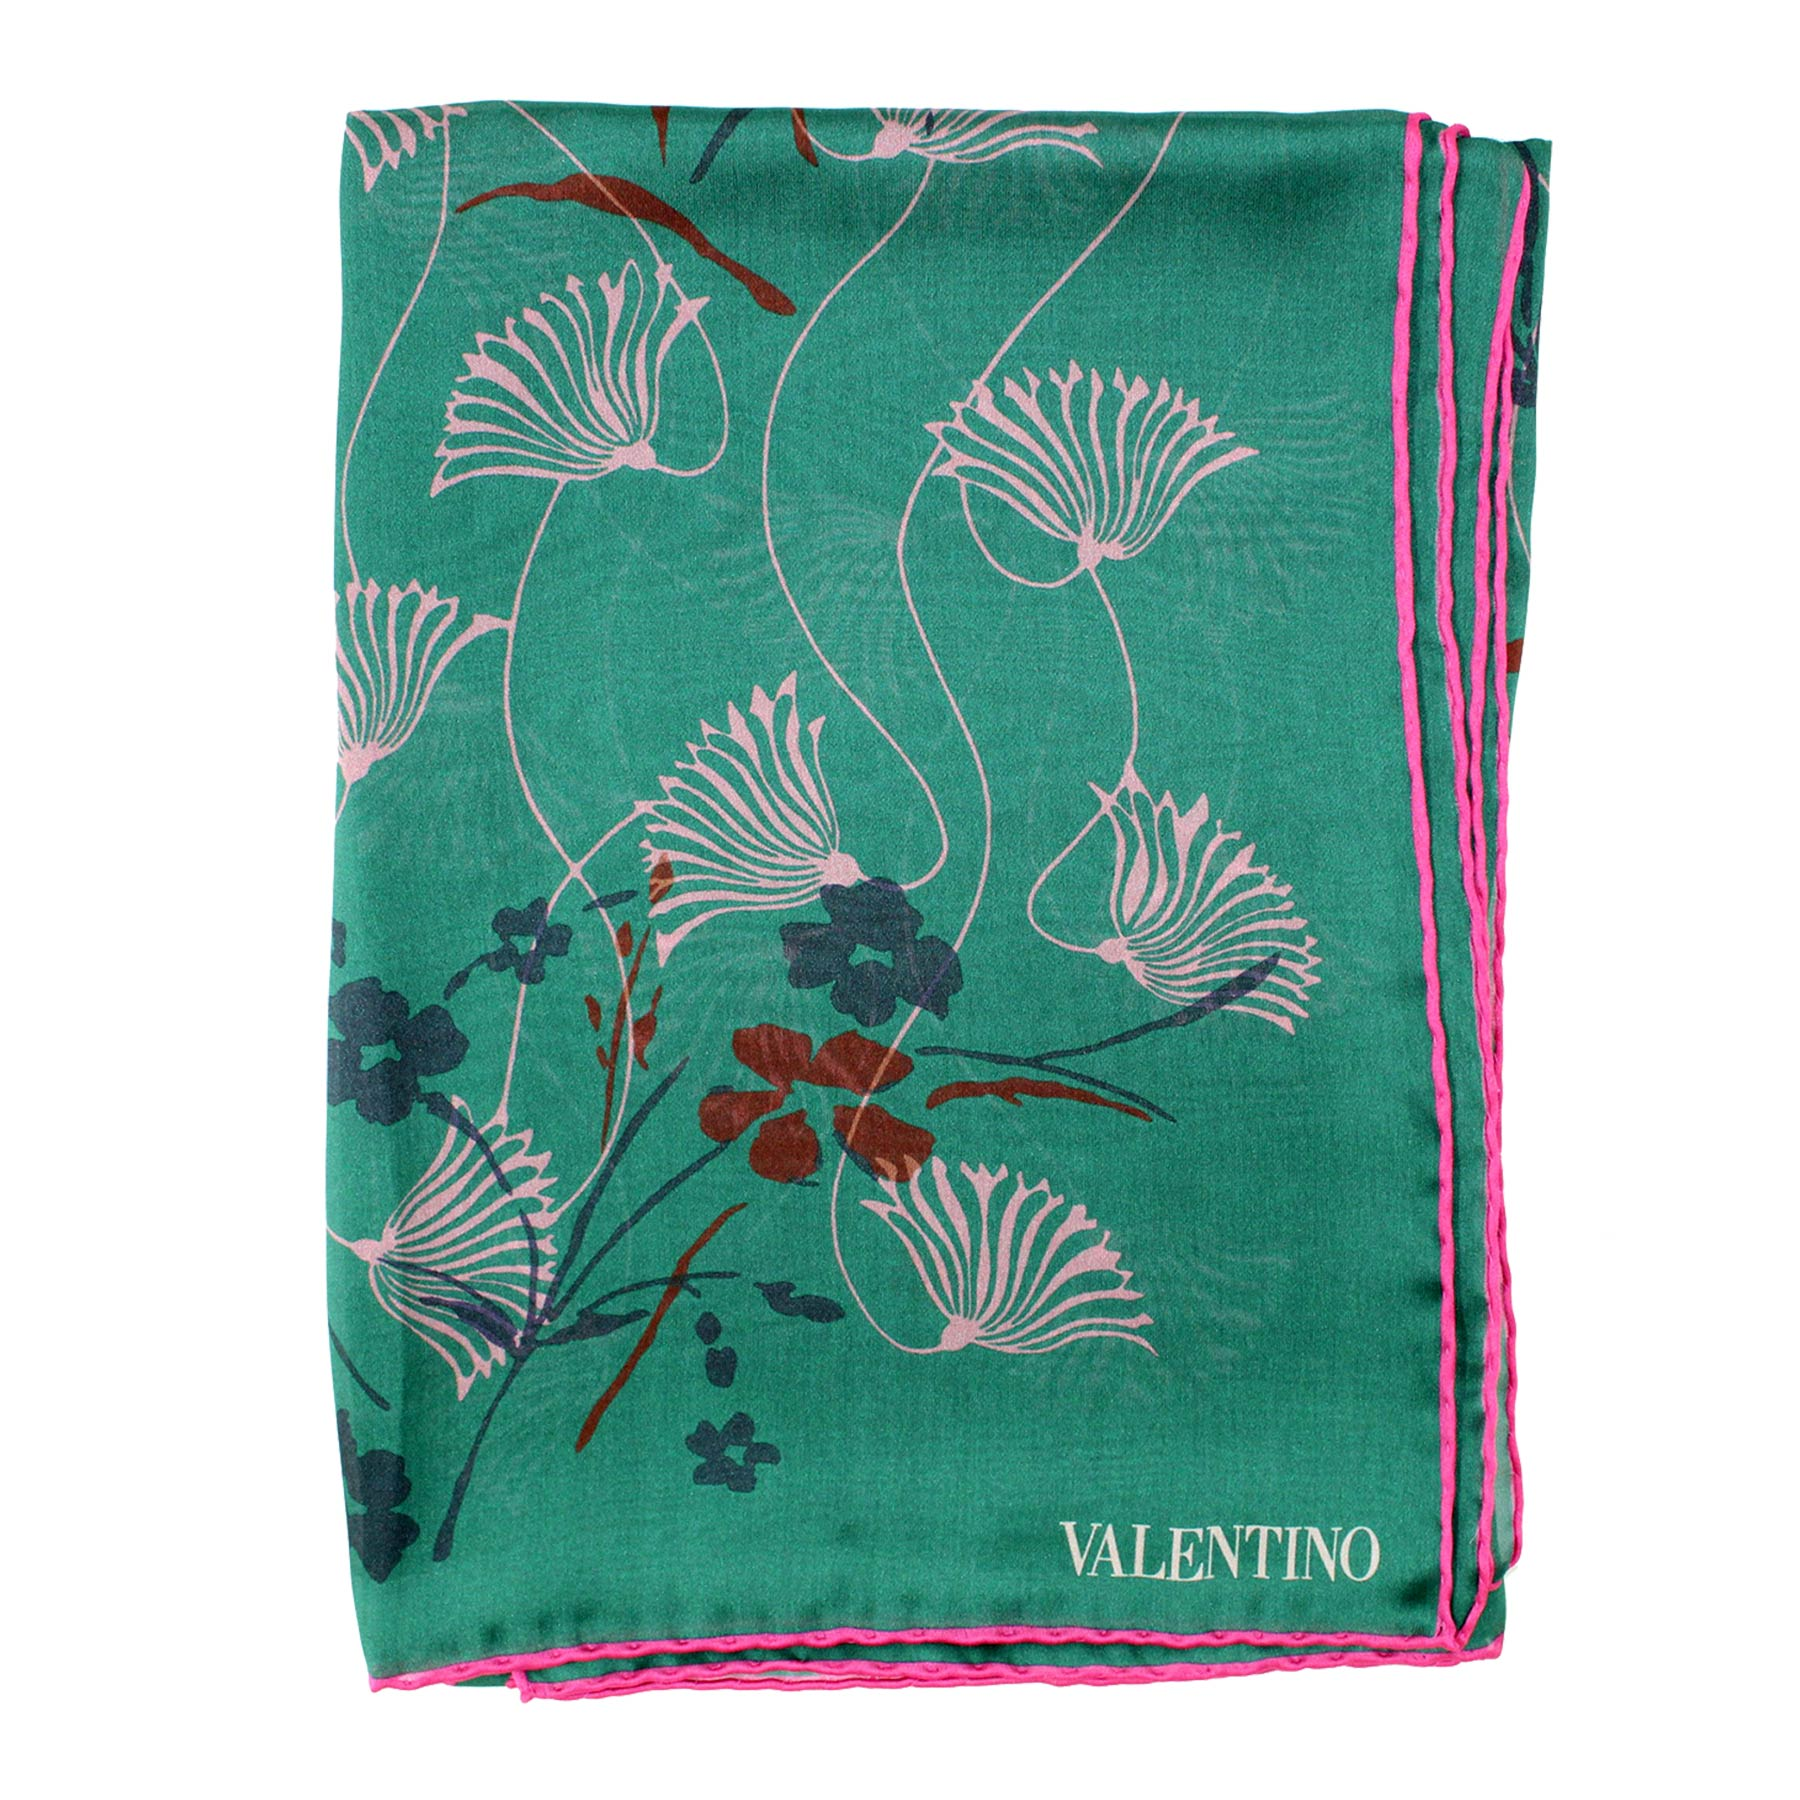 New Valentino Scarf Green Pink Floral Design